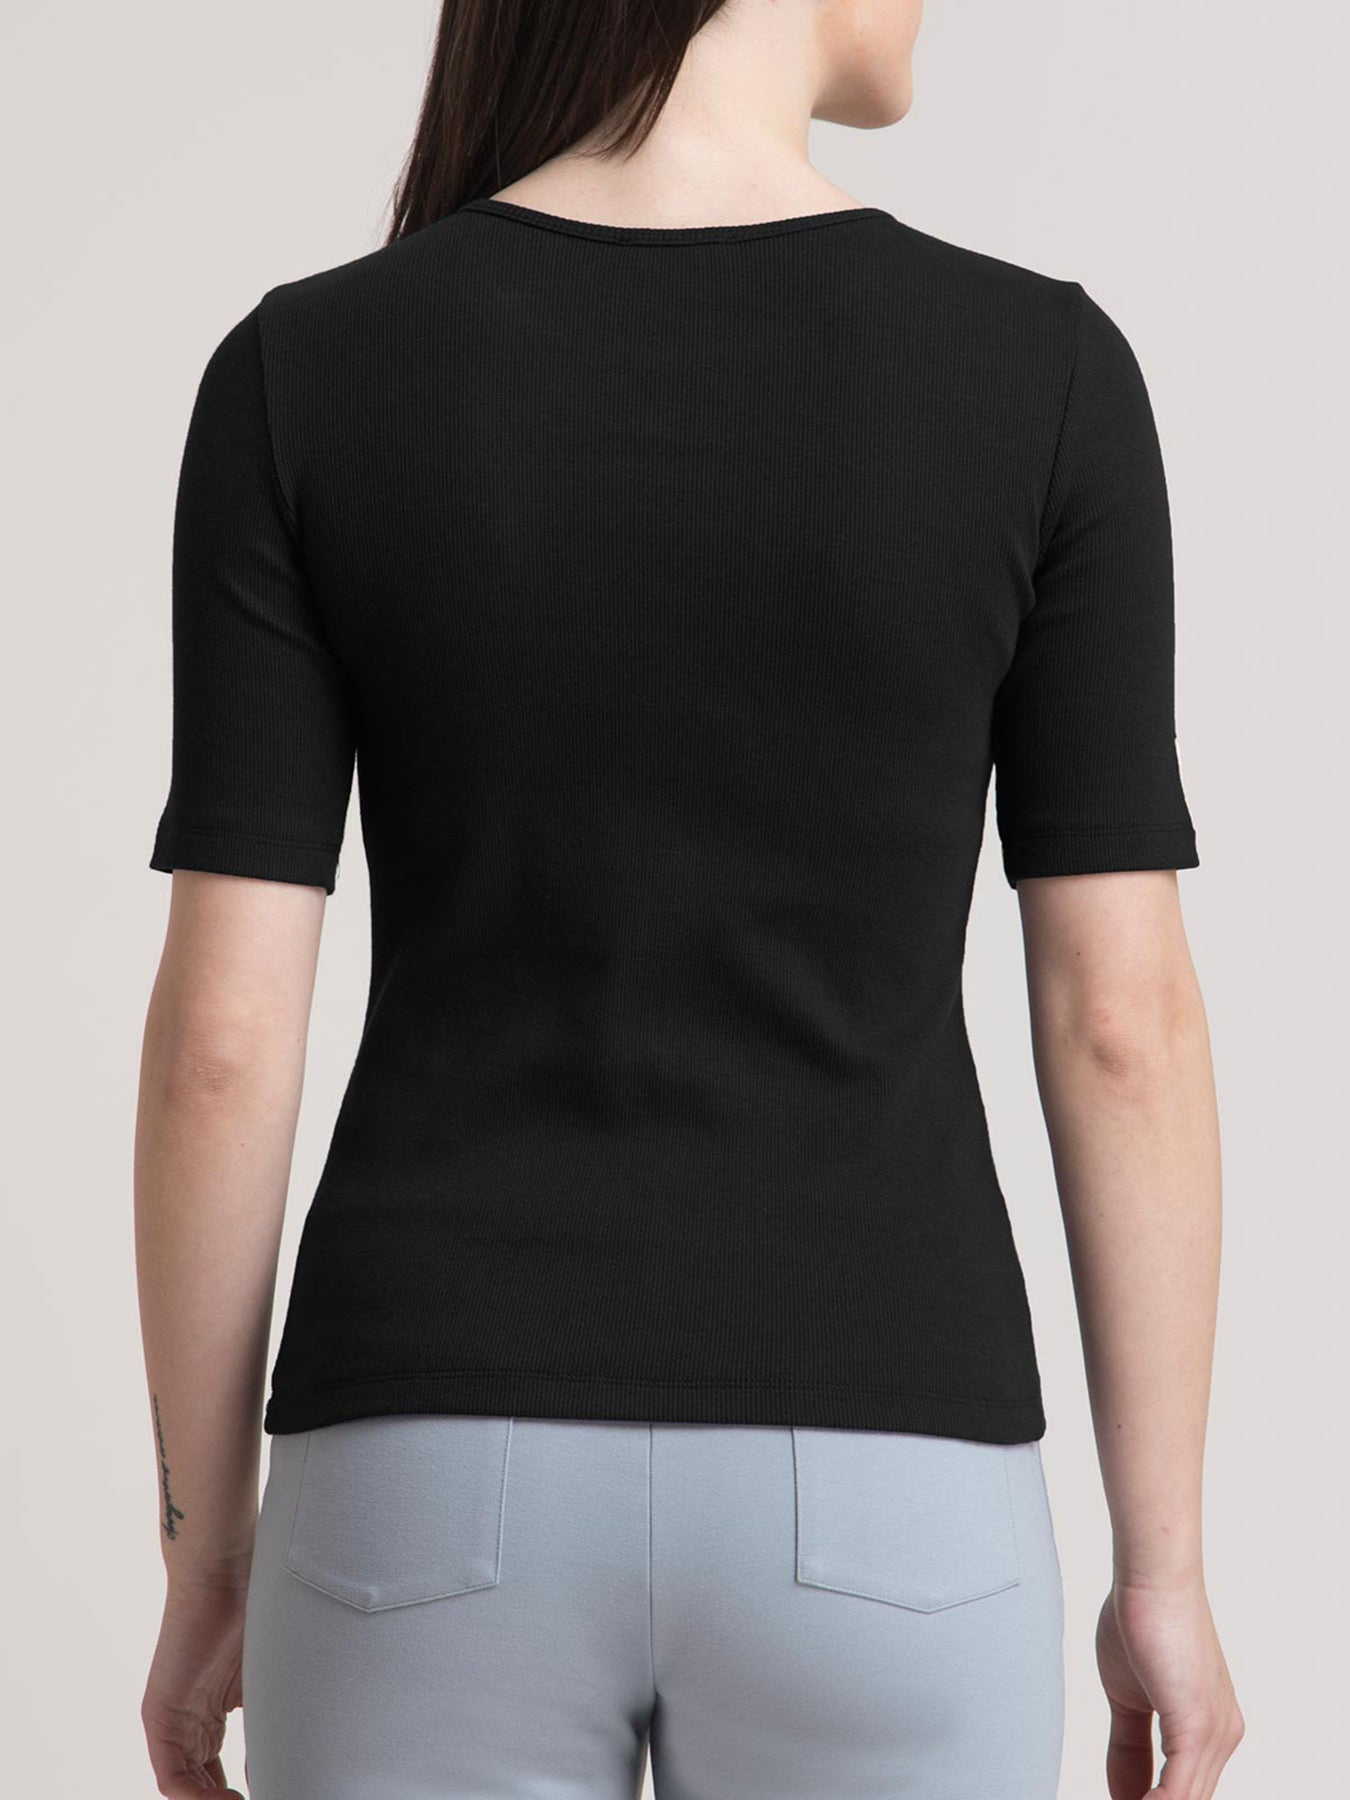 Stretchable Round Neck LivIn T Shirt - Black